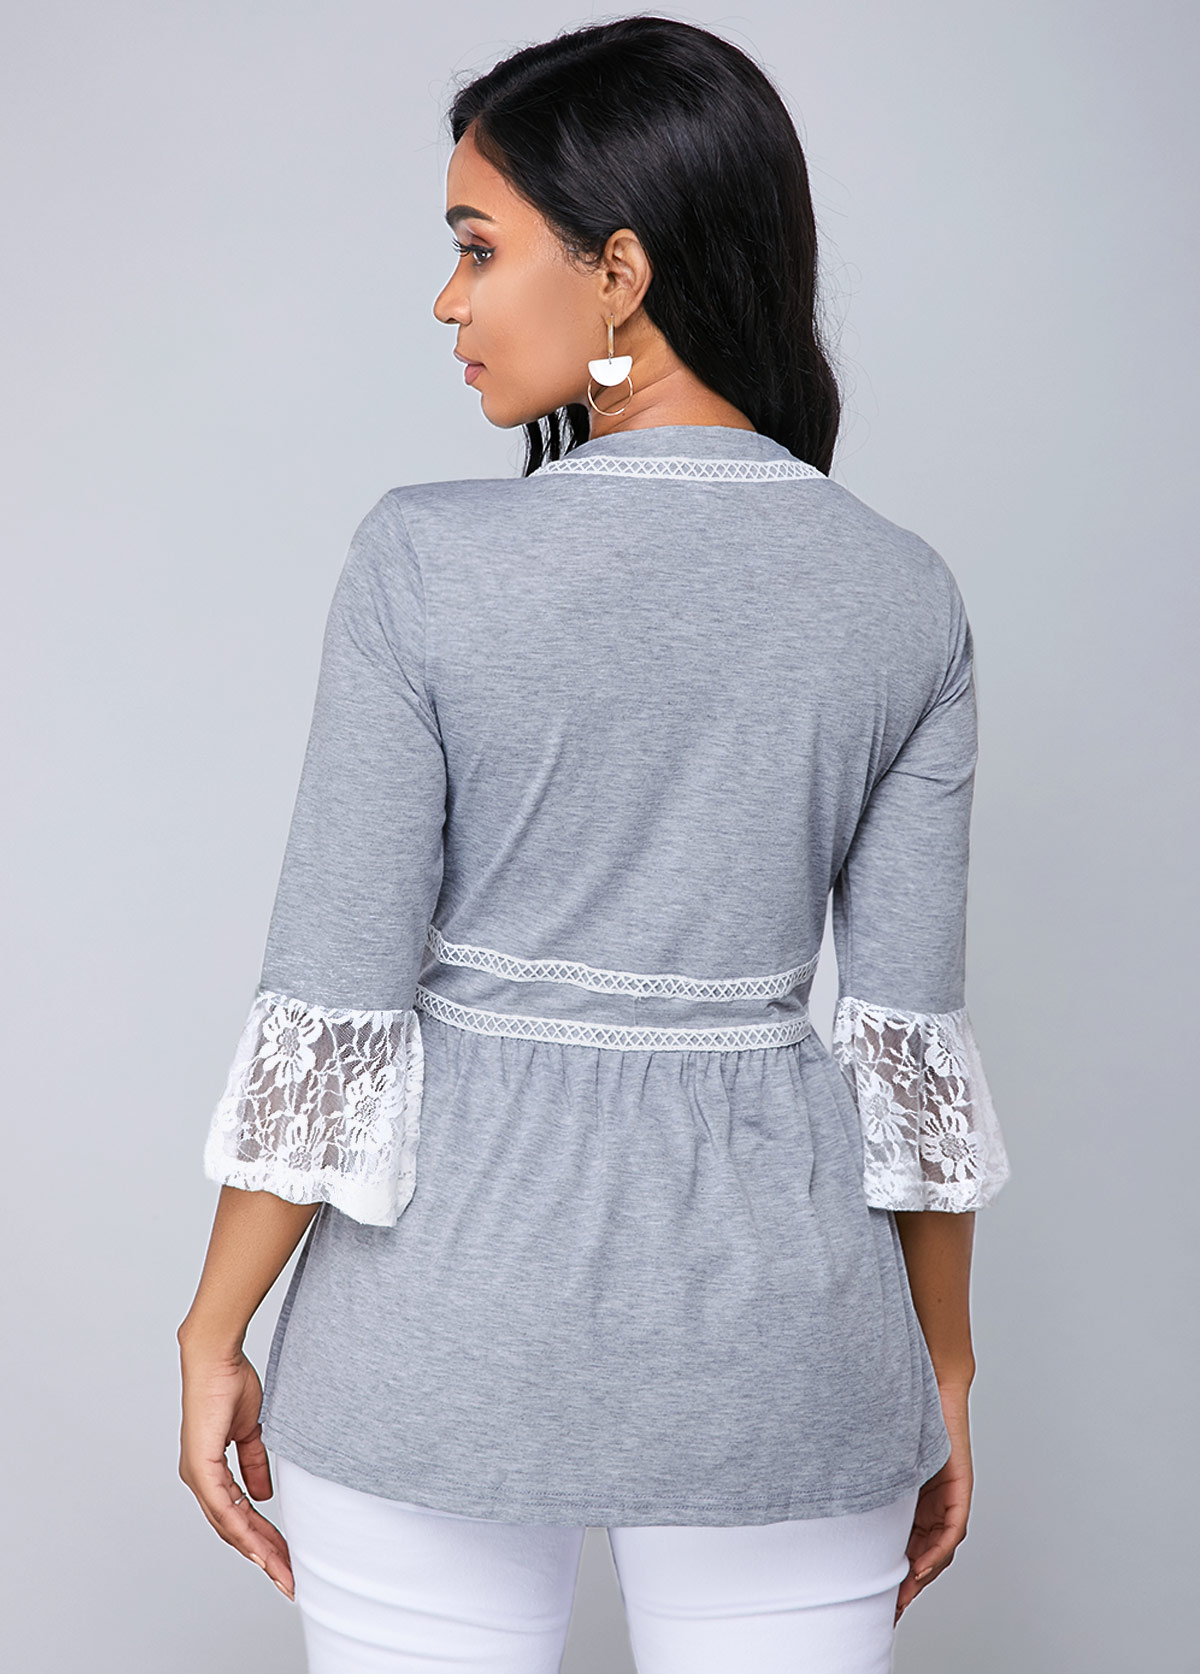 Button Up Flare Cuff Lace Panel T Shirt